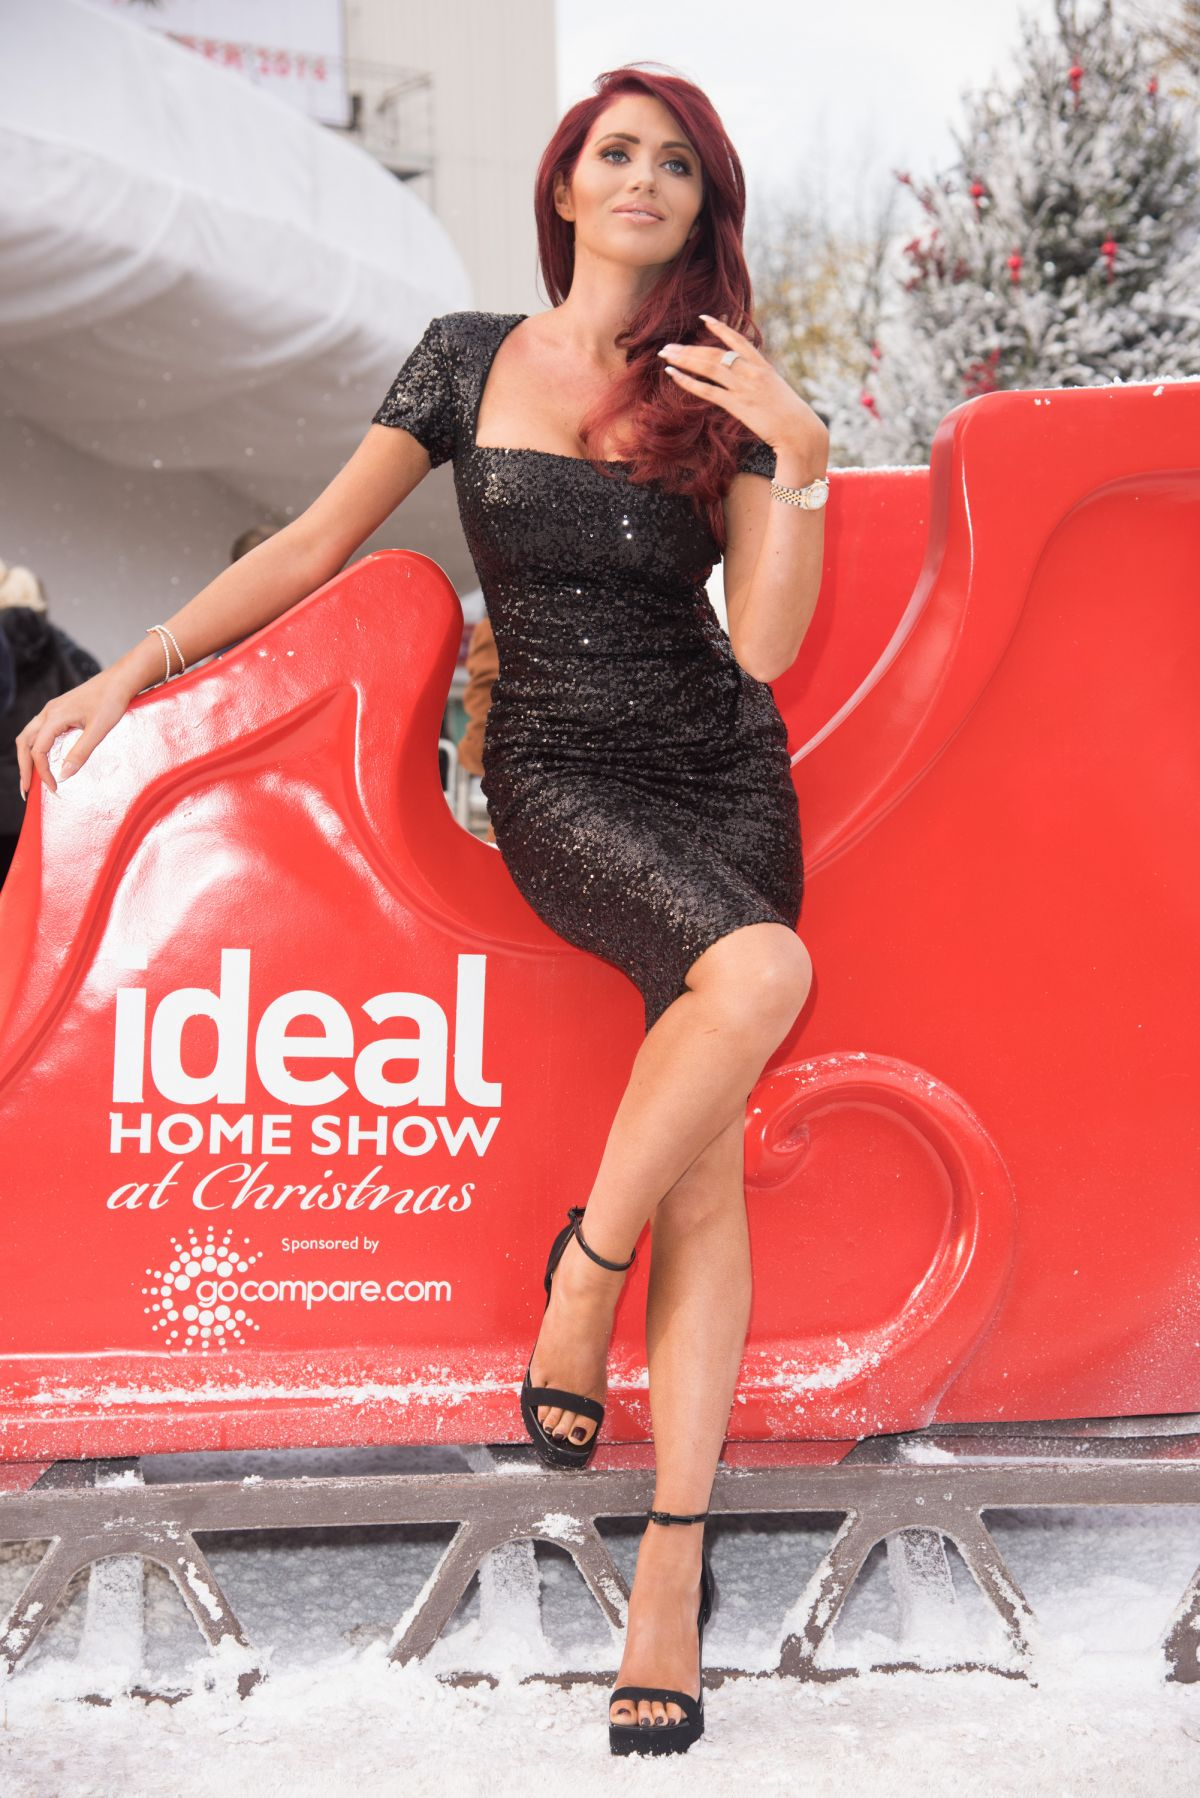 AMY CHILDS at The Ideal Home Show at Christmas Opening in London